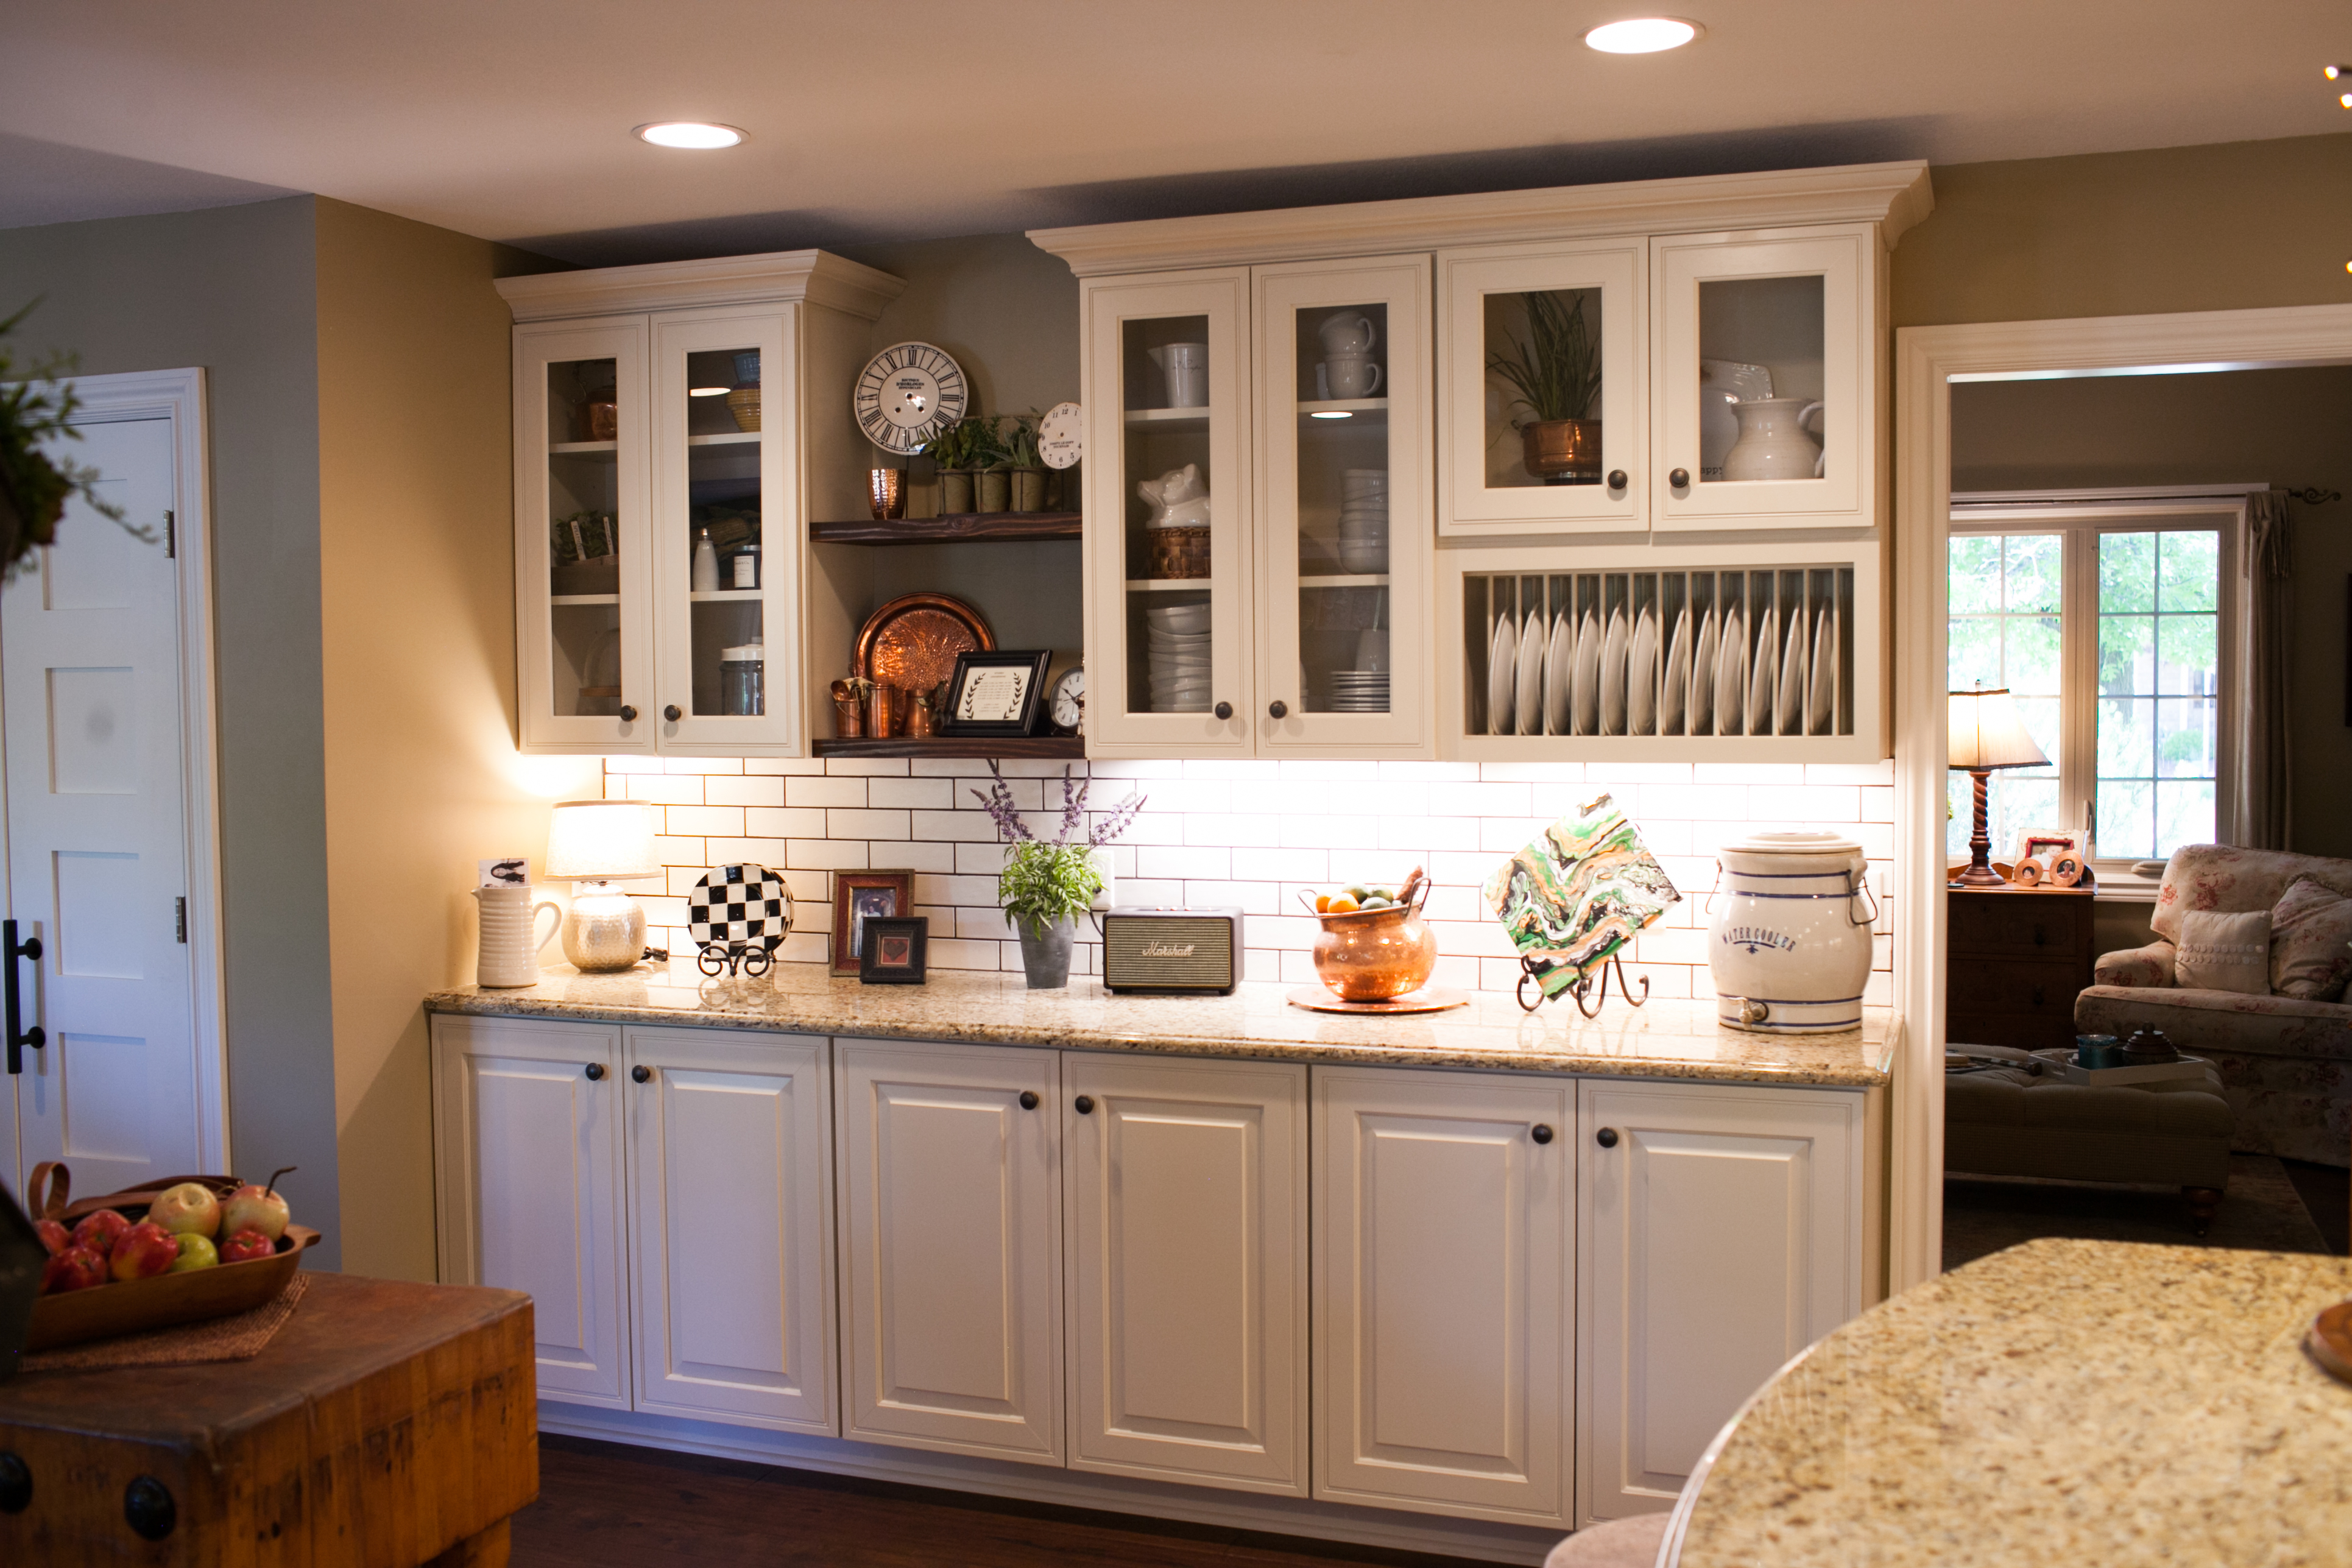 Open Shelving and Dishrack for Kitchen Remodeling